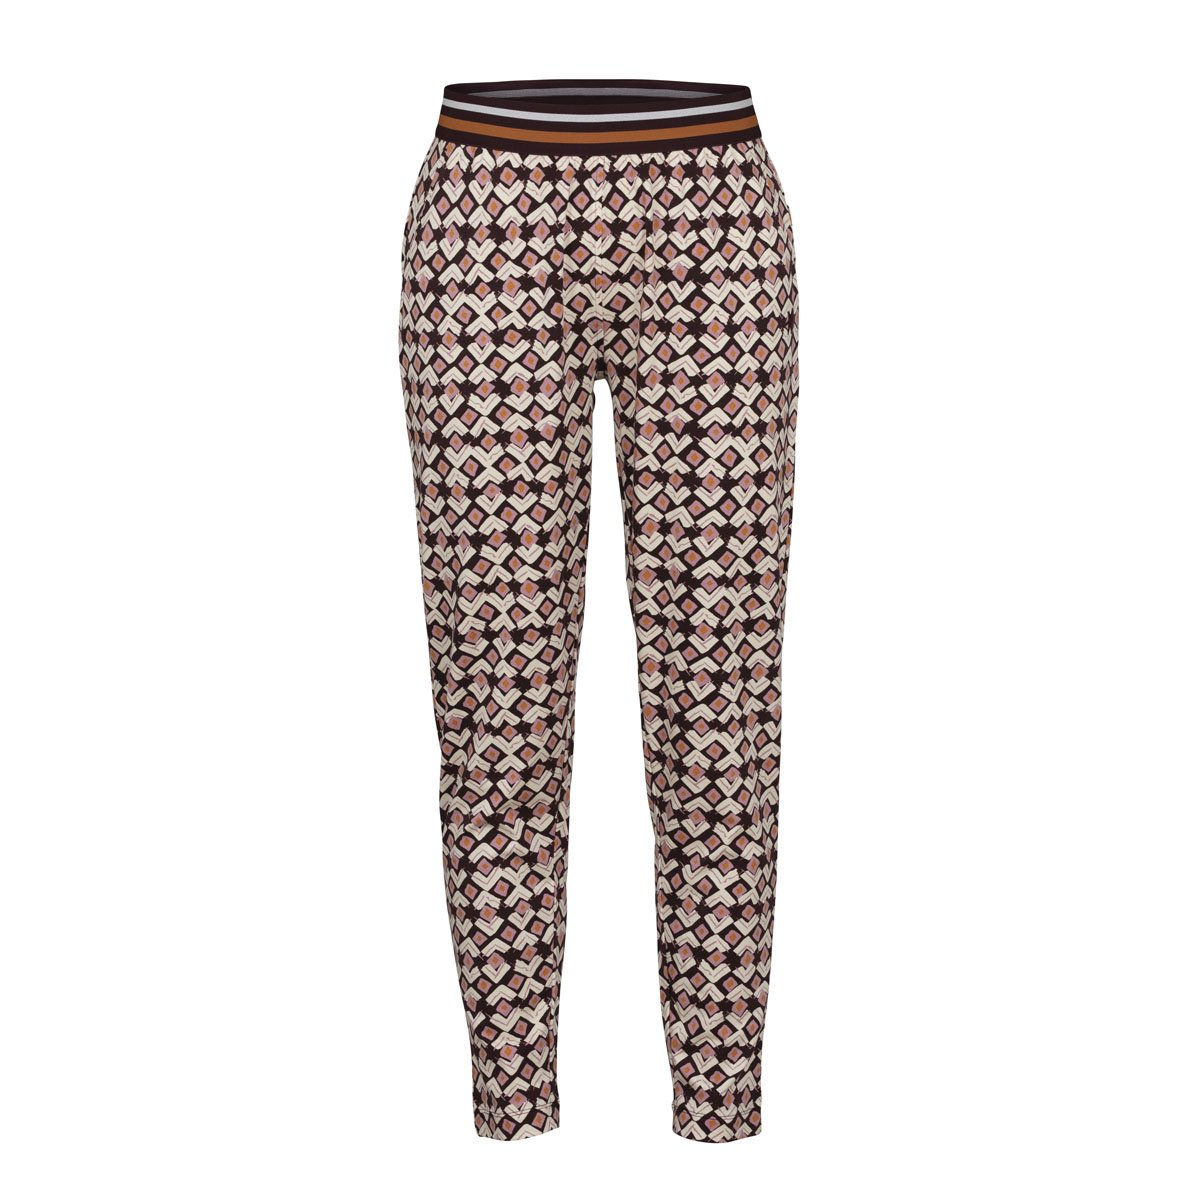 Camina Trousers